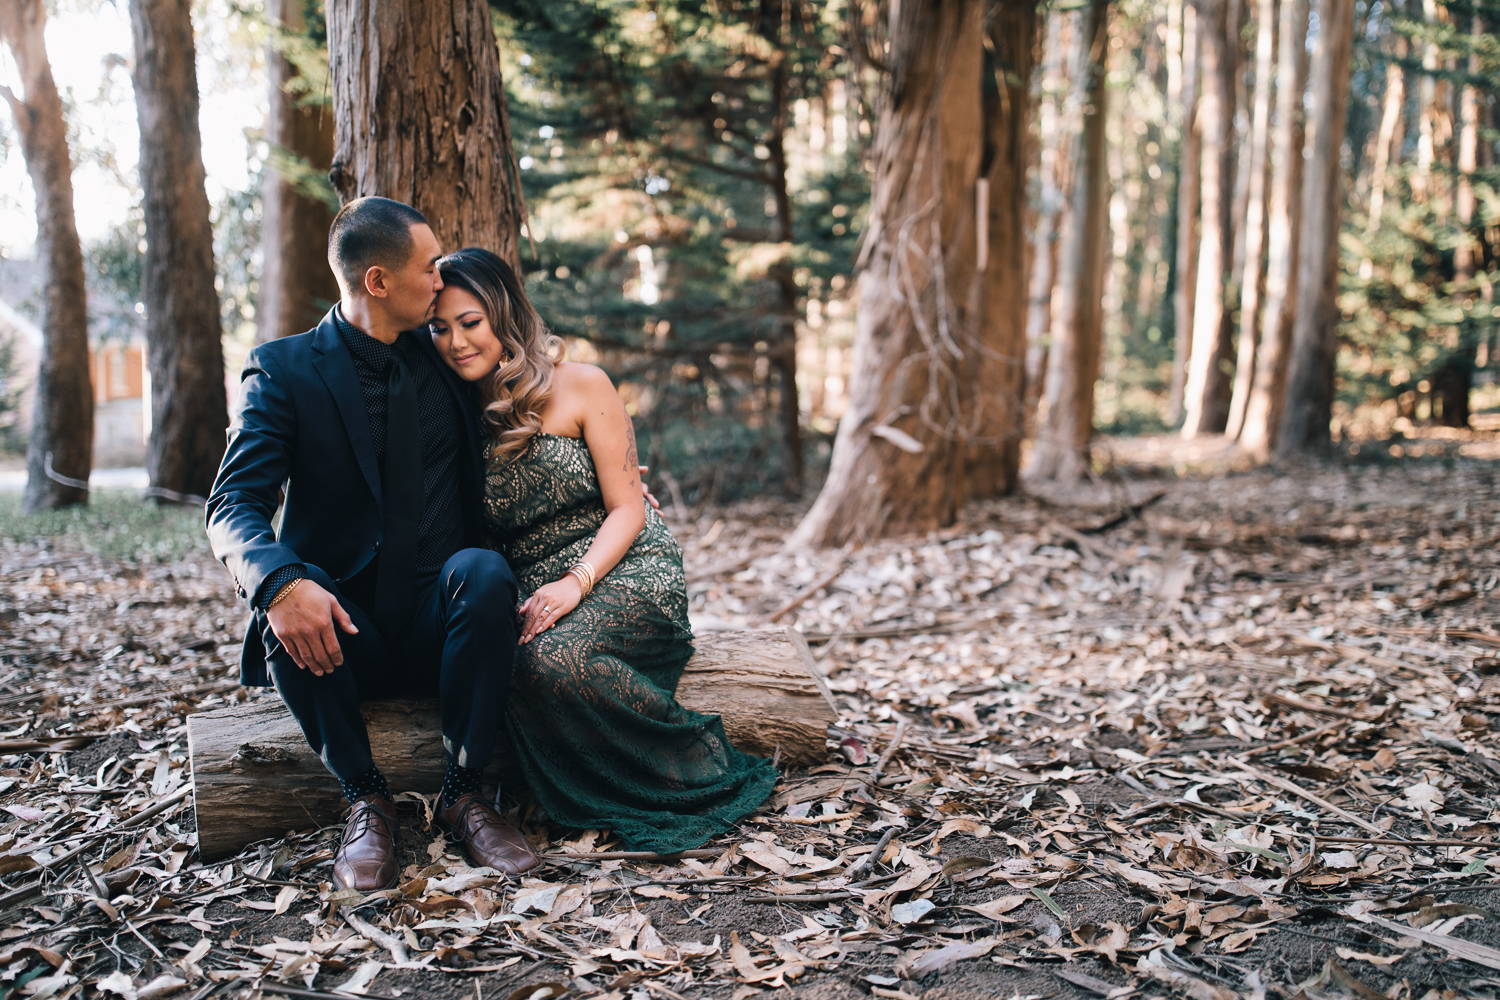 2018_11_ 042018.11.4 Leah + Ed Engagement Session Blog photos Edited For Web 0047.jpg